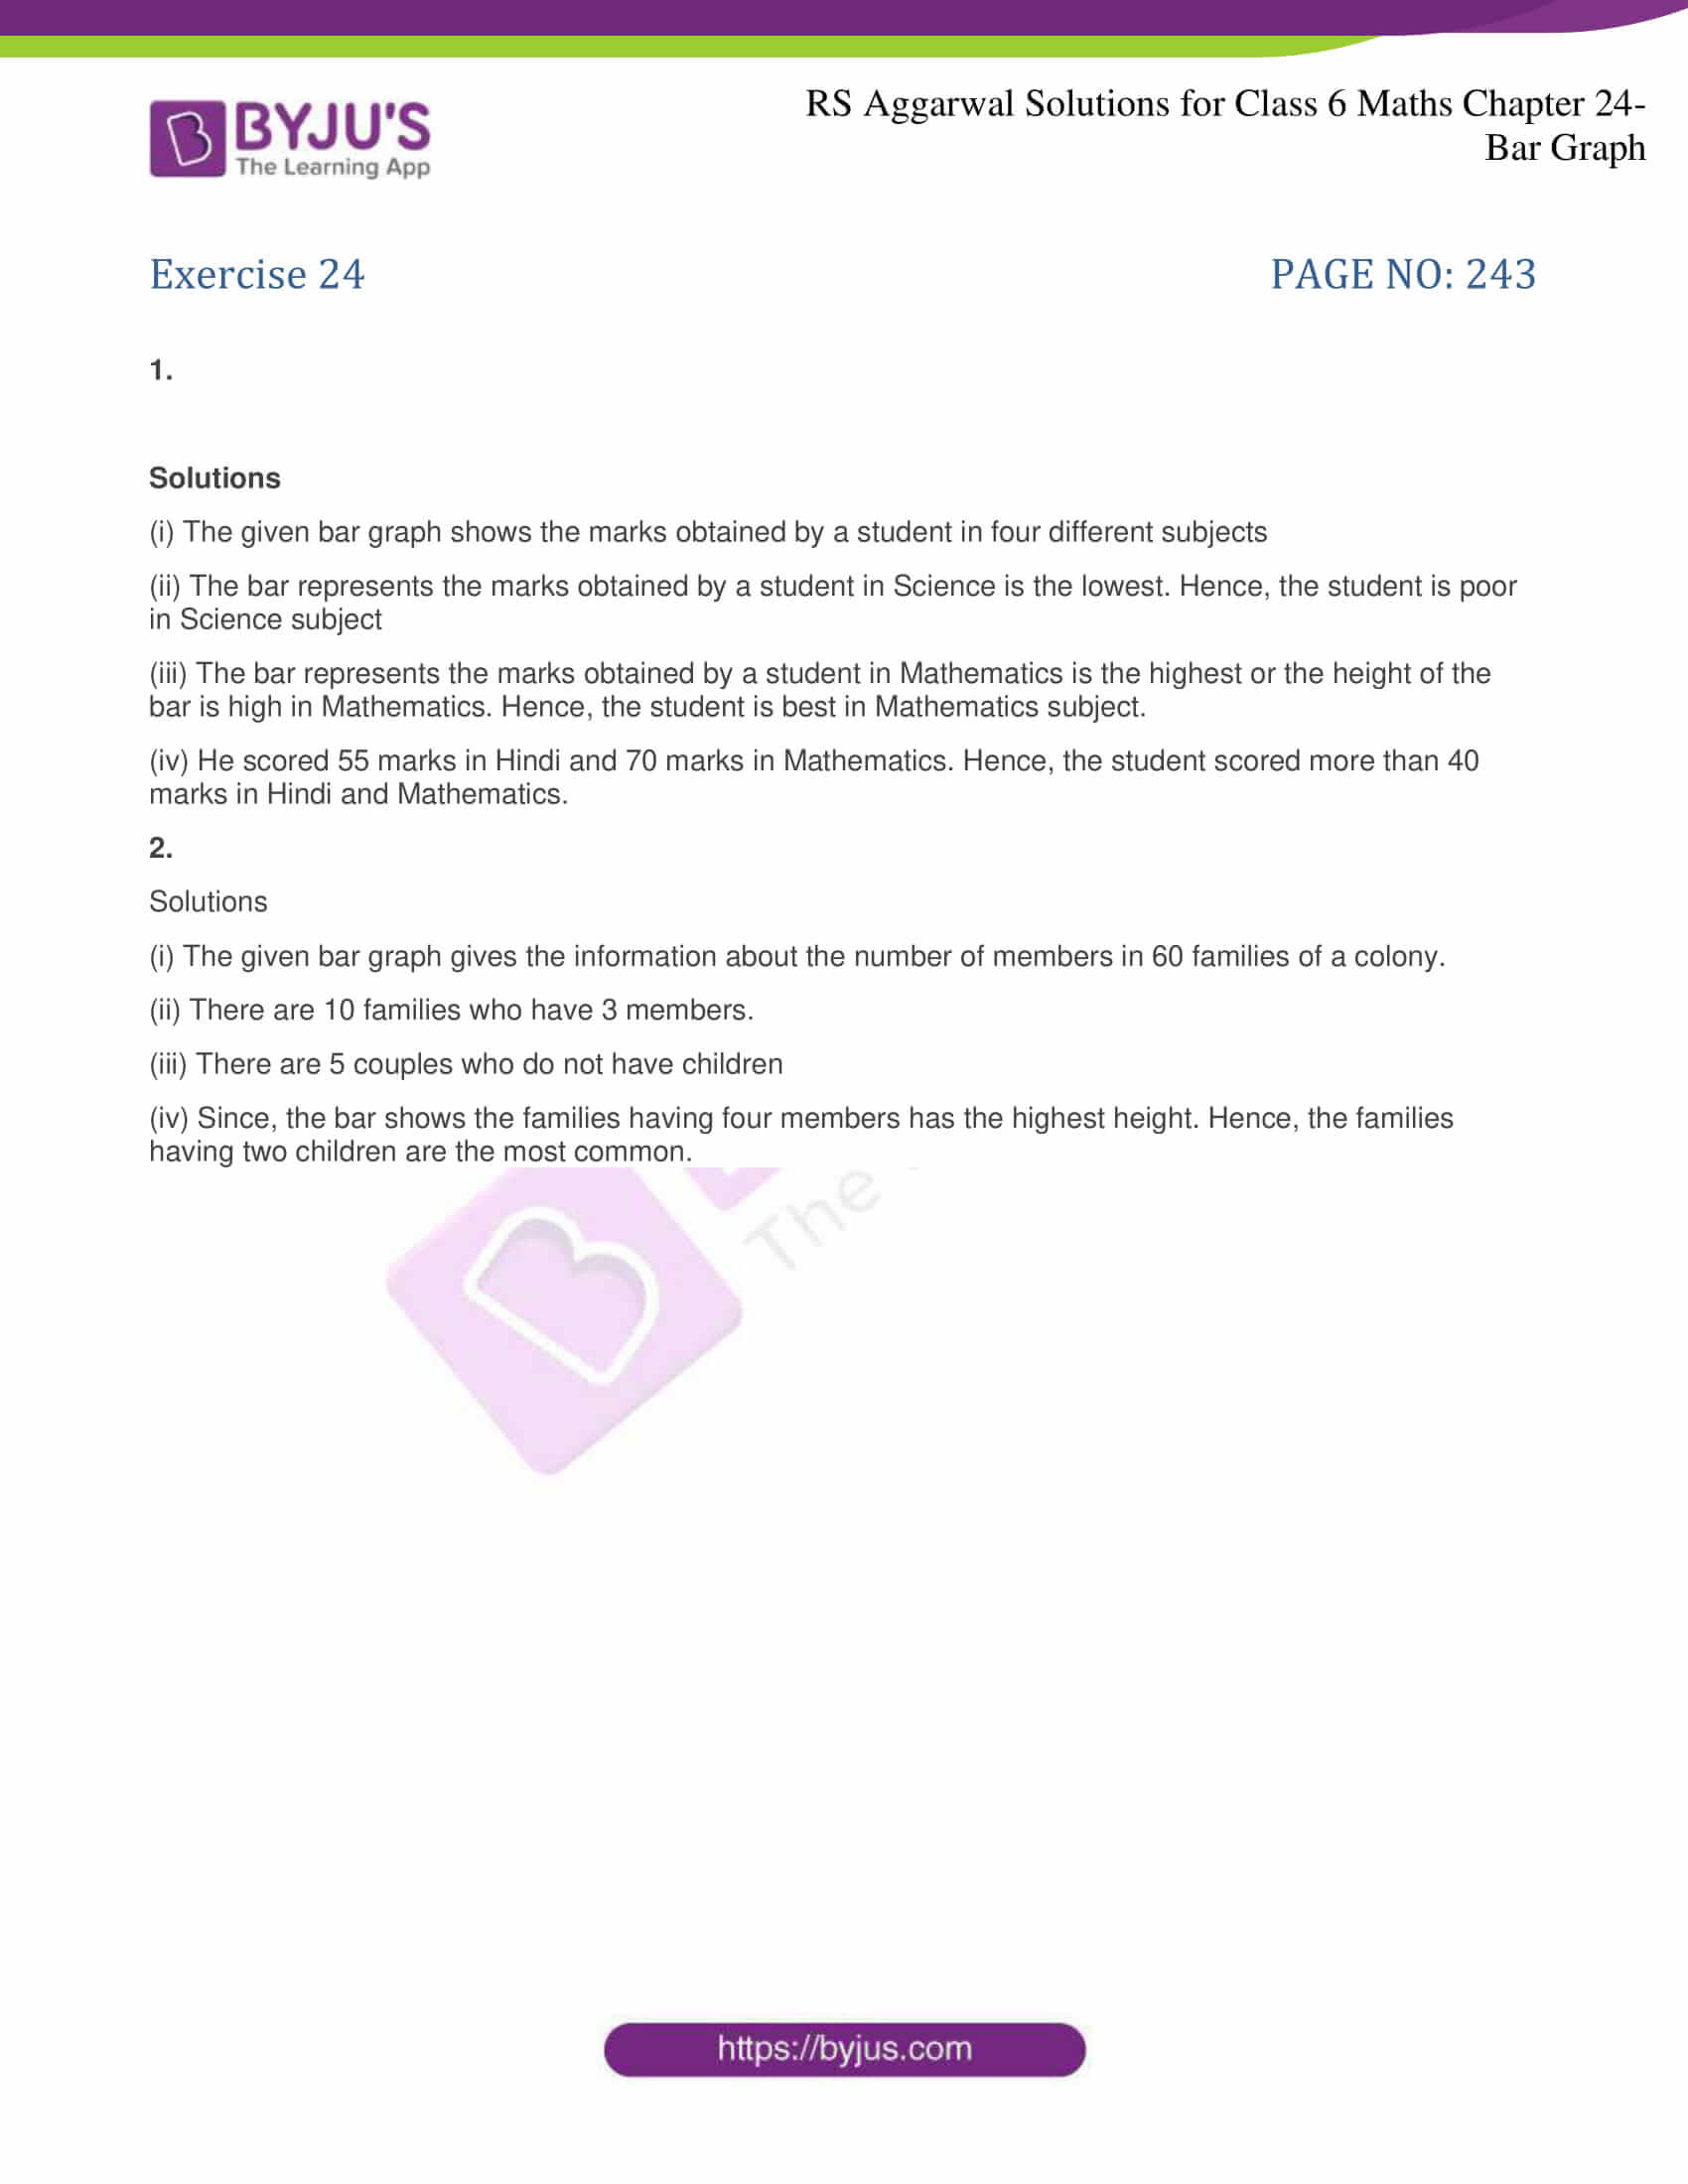 rs aggarwal solutions for class 6 maths chapter 24 1